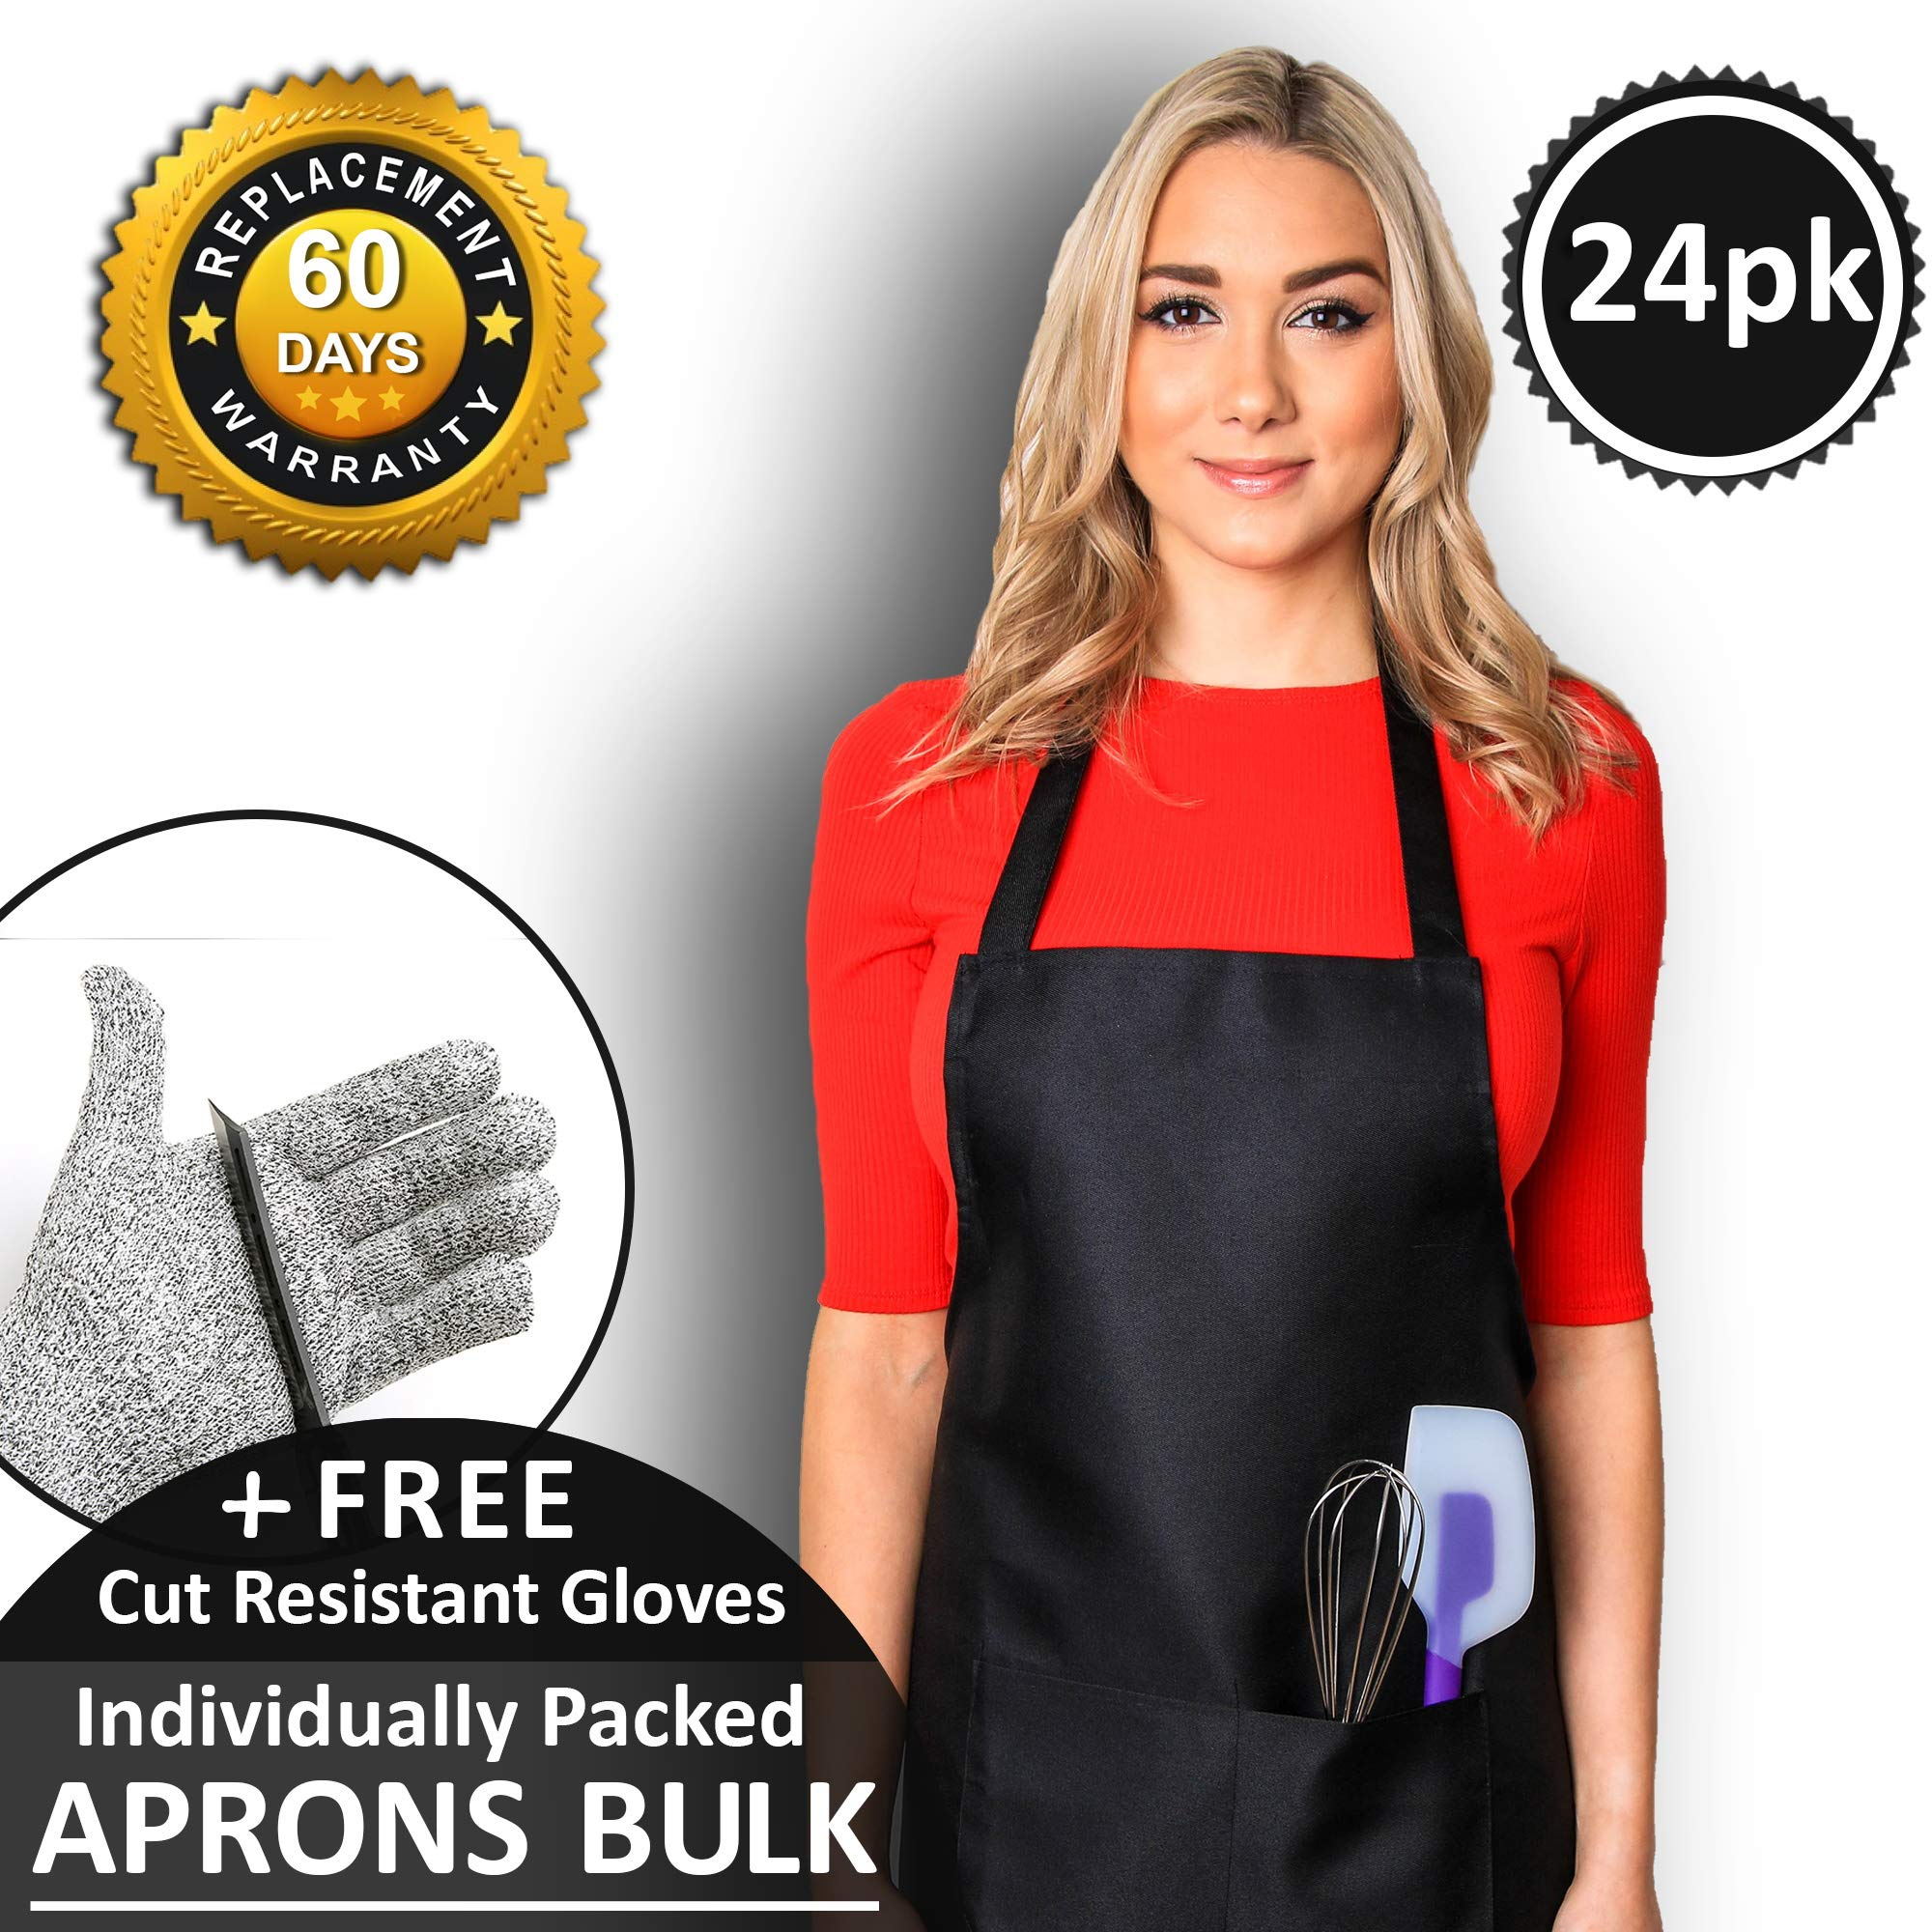 CHEFLUX [24pk] Premium Cooking Aprons Bulk for Women with 2 Pockets [Unisex] Kitchen Adult Aprons for Men [53g Lightweight] Black Bib Chef Apron [Double Stitch Hemmed Seams] BBQ Chefs Butcher Artist by ChefluxChoice.com